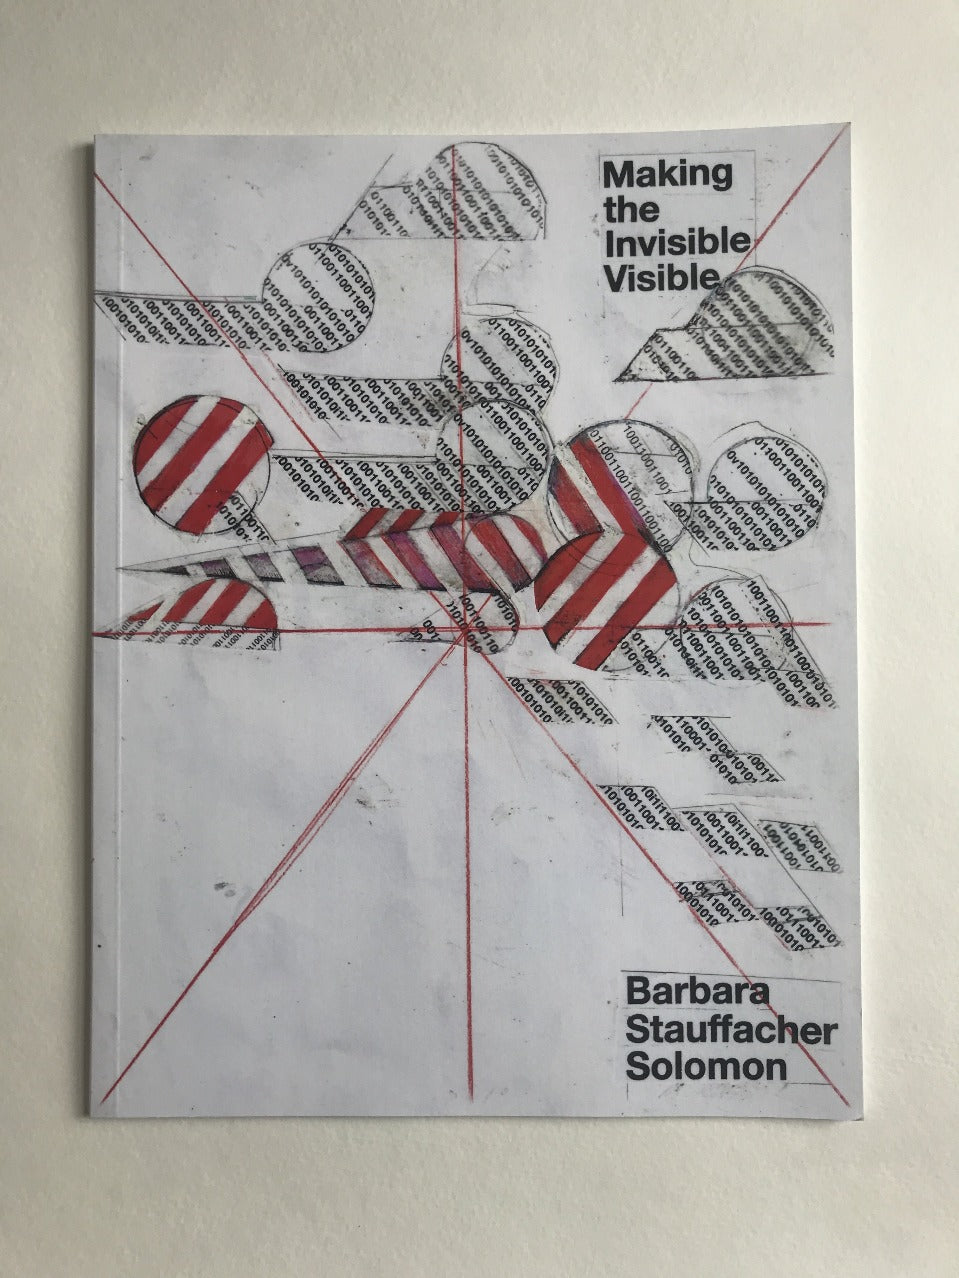 MAKING THE INVISIBLE VISIBLE - Barbara Stauffacher Solomon.